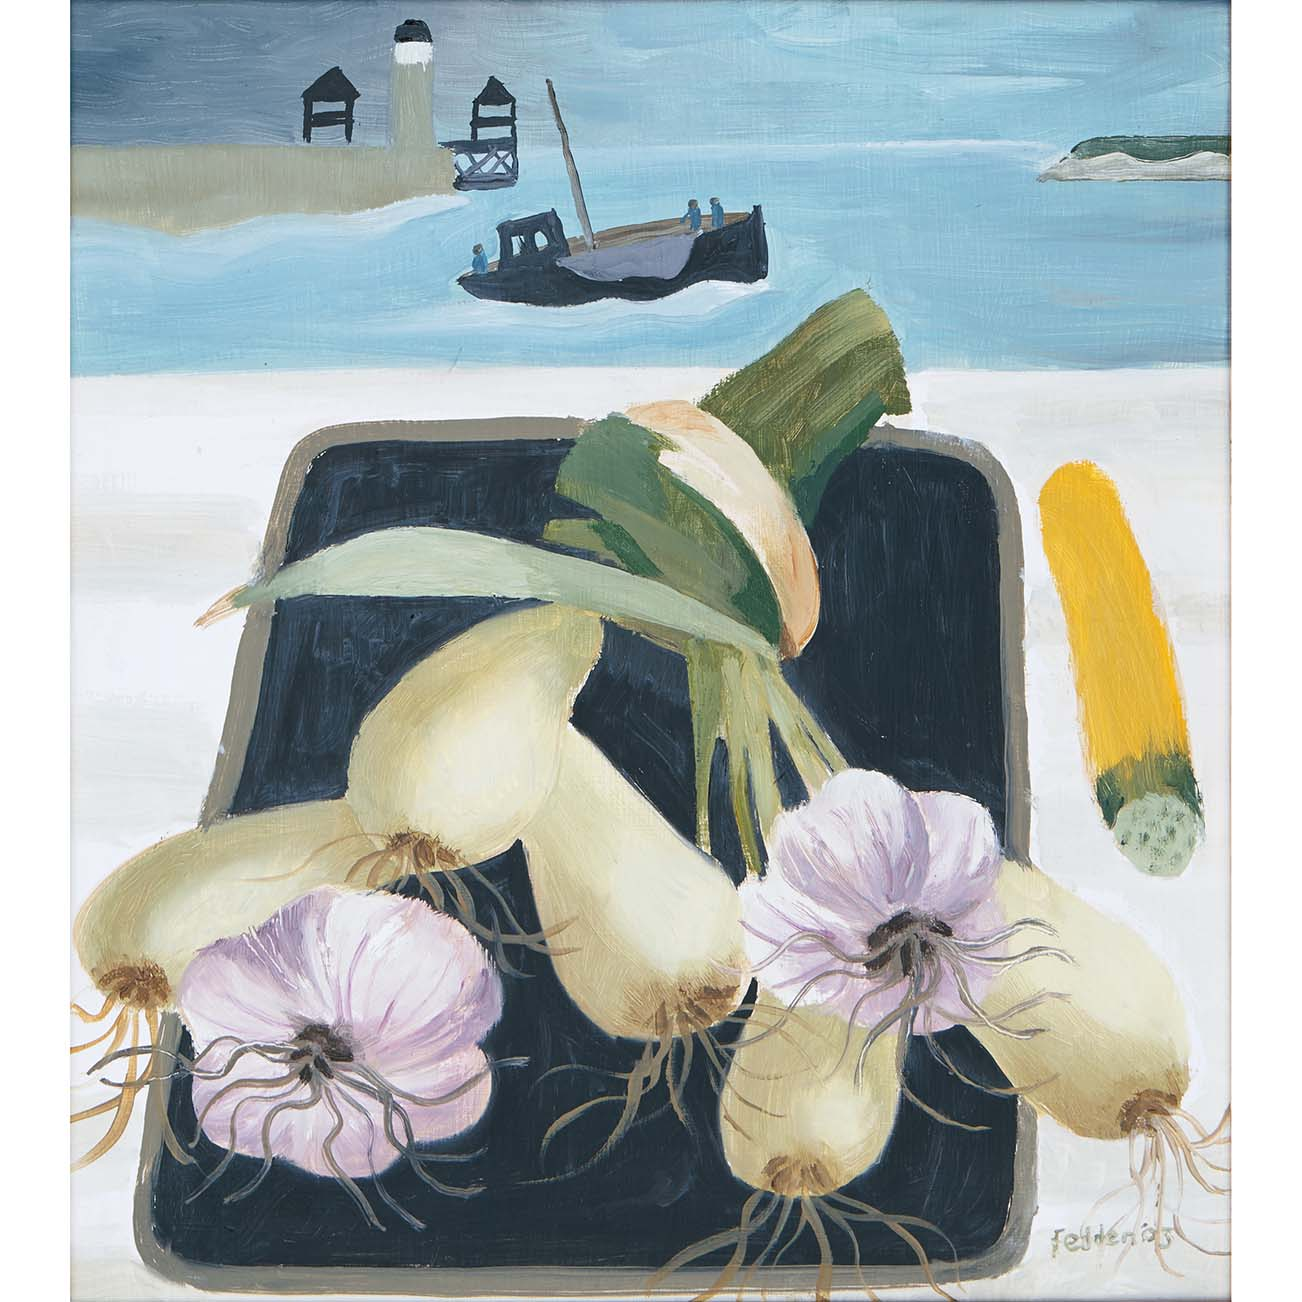 MARY FEDDEN. ONIONS AND GARLIC. 2003